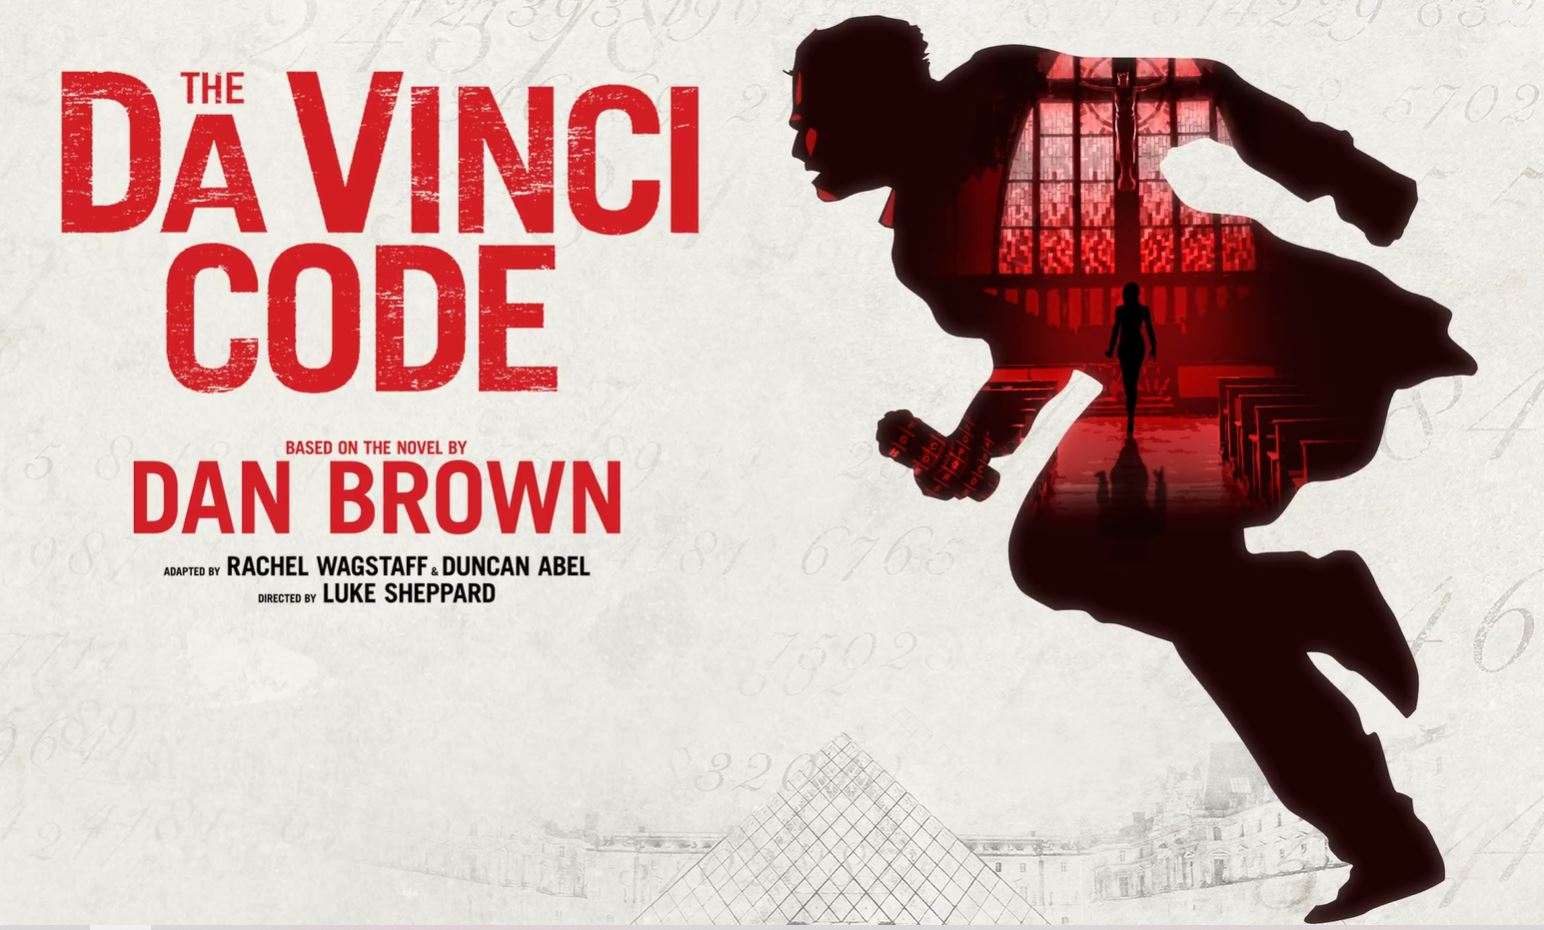 World premiere tour of The Da Vinci Code stage adaptation in 2021